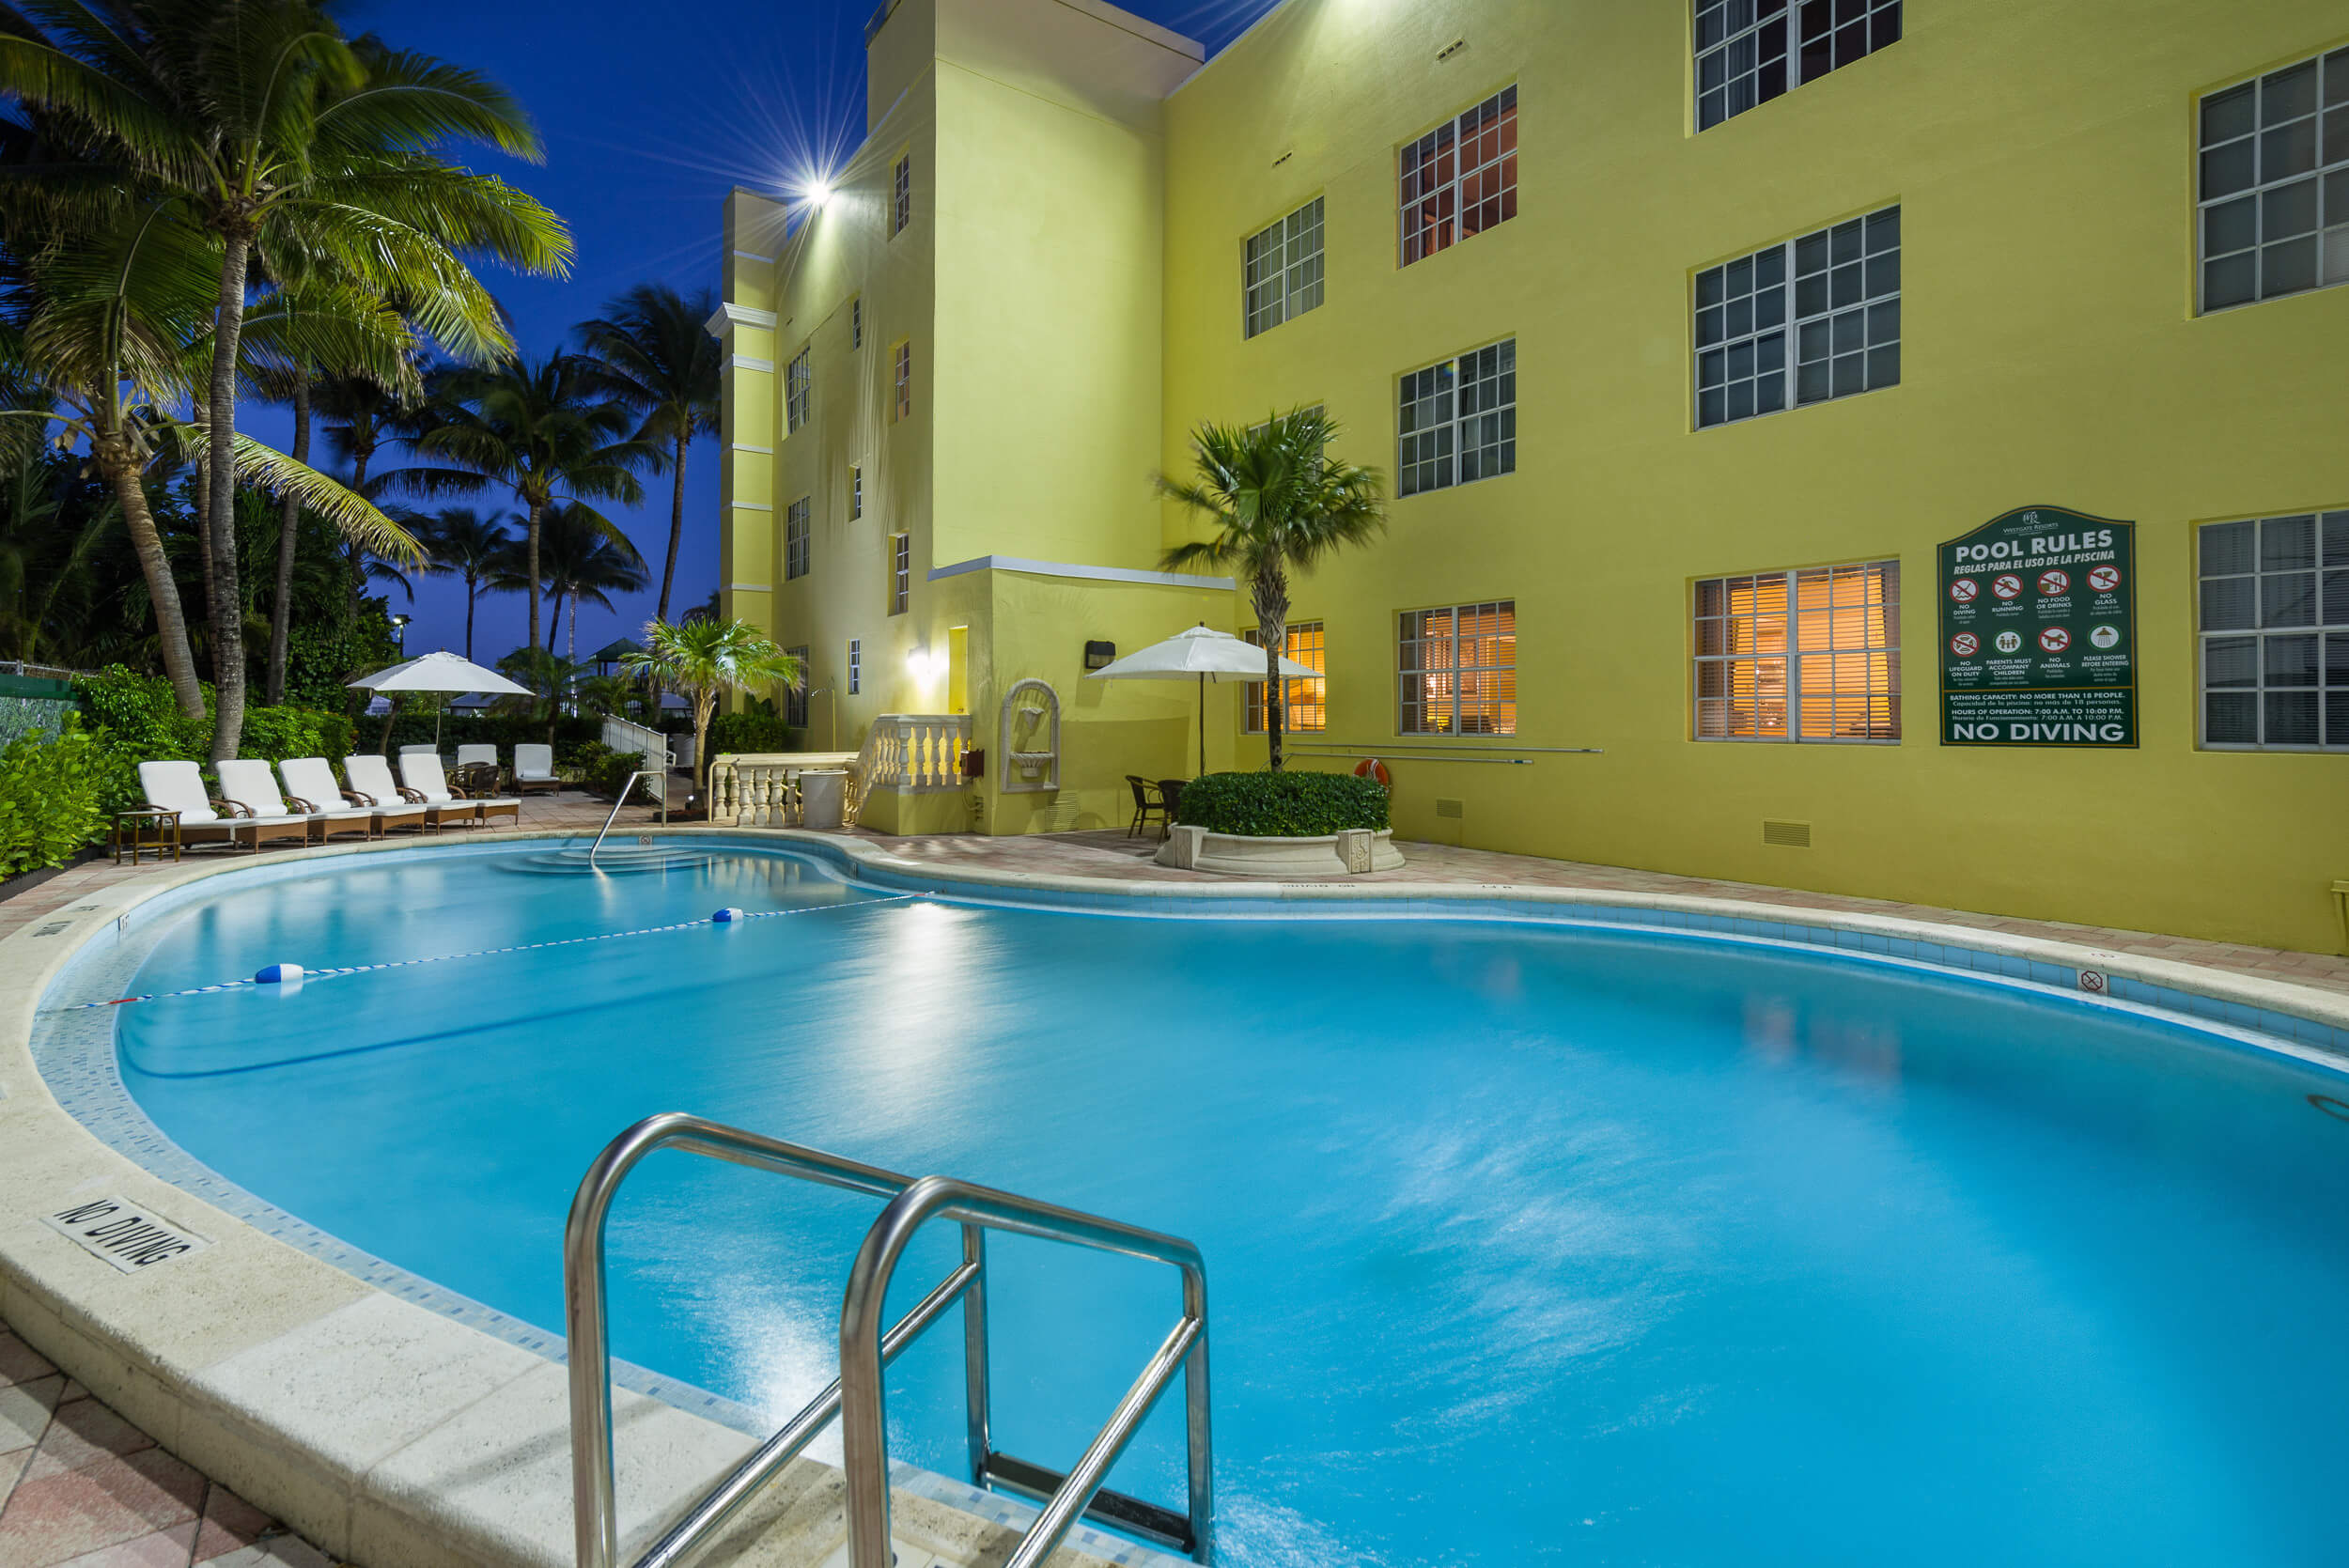 Heated outdoor pool with lounge chairs | Westgate South Beach Oceanfront Resort